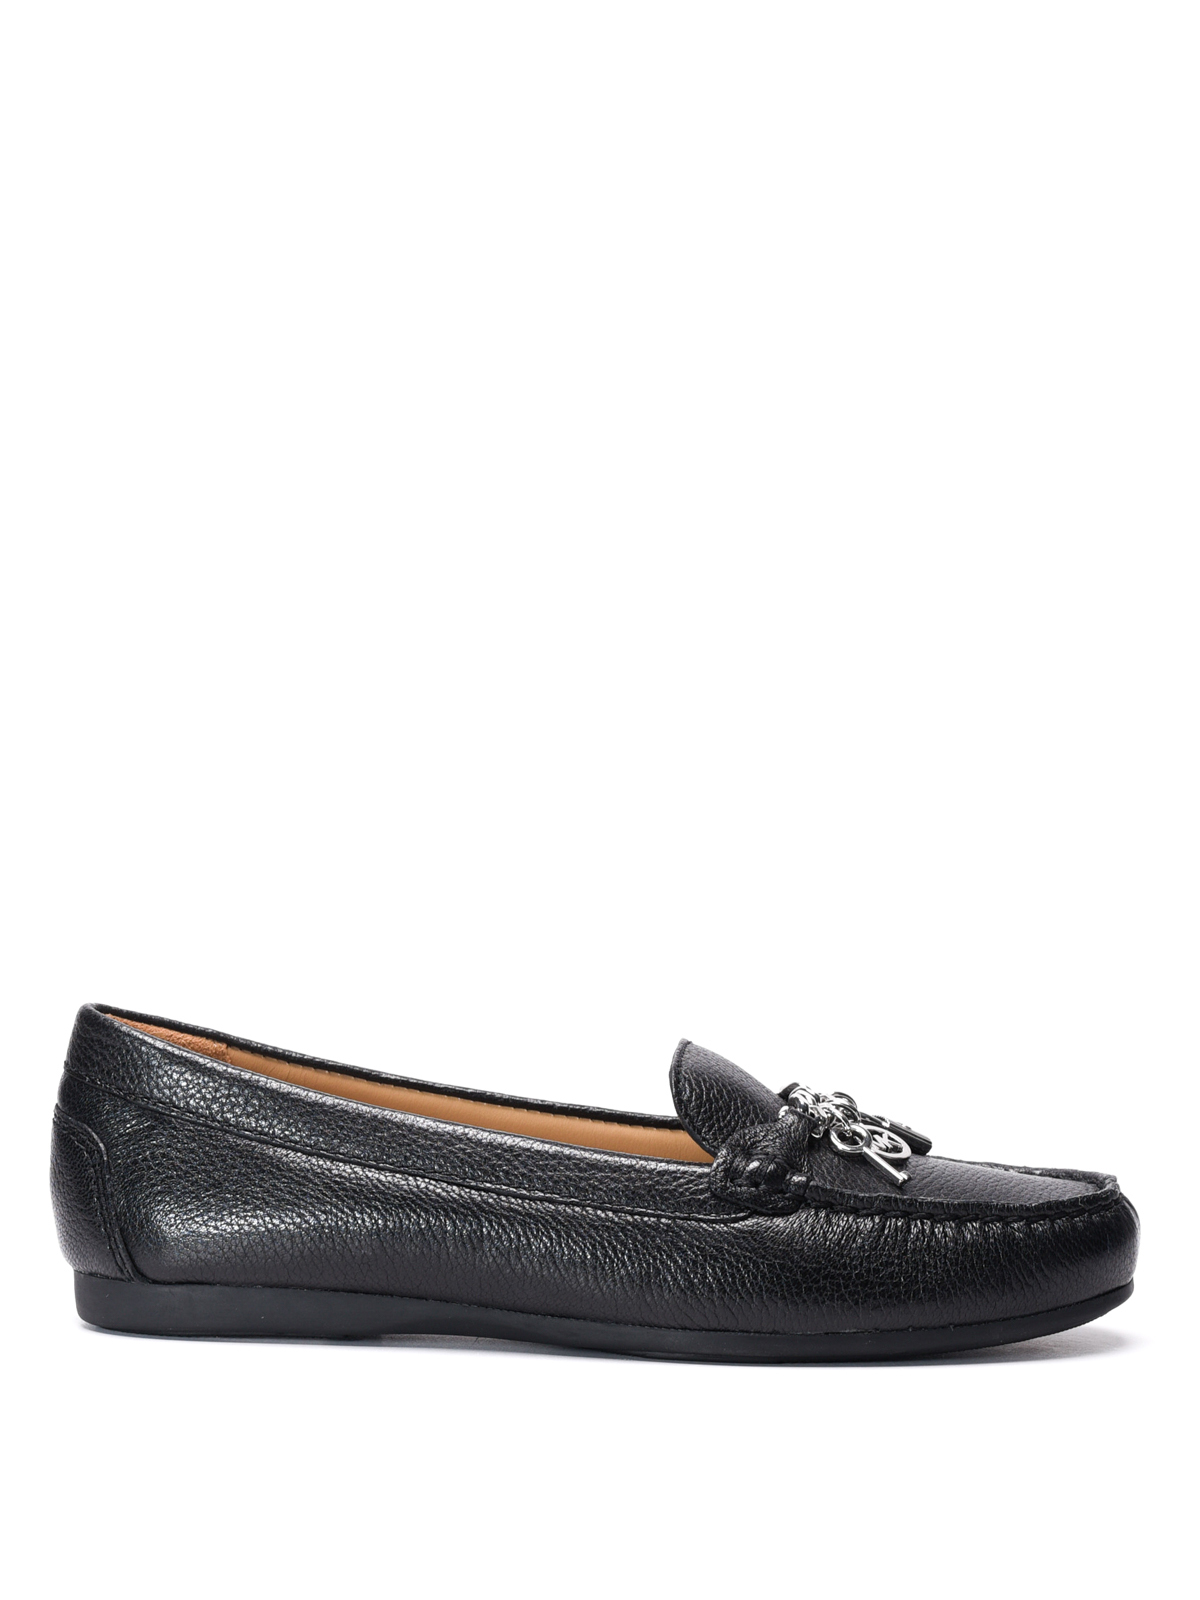 suki leather loafers by michael kors loafers slippers. Black Bedroom Furniture Sets. Home Design Ideas